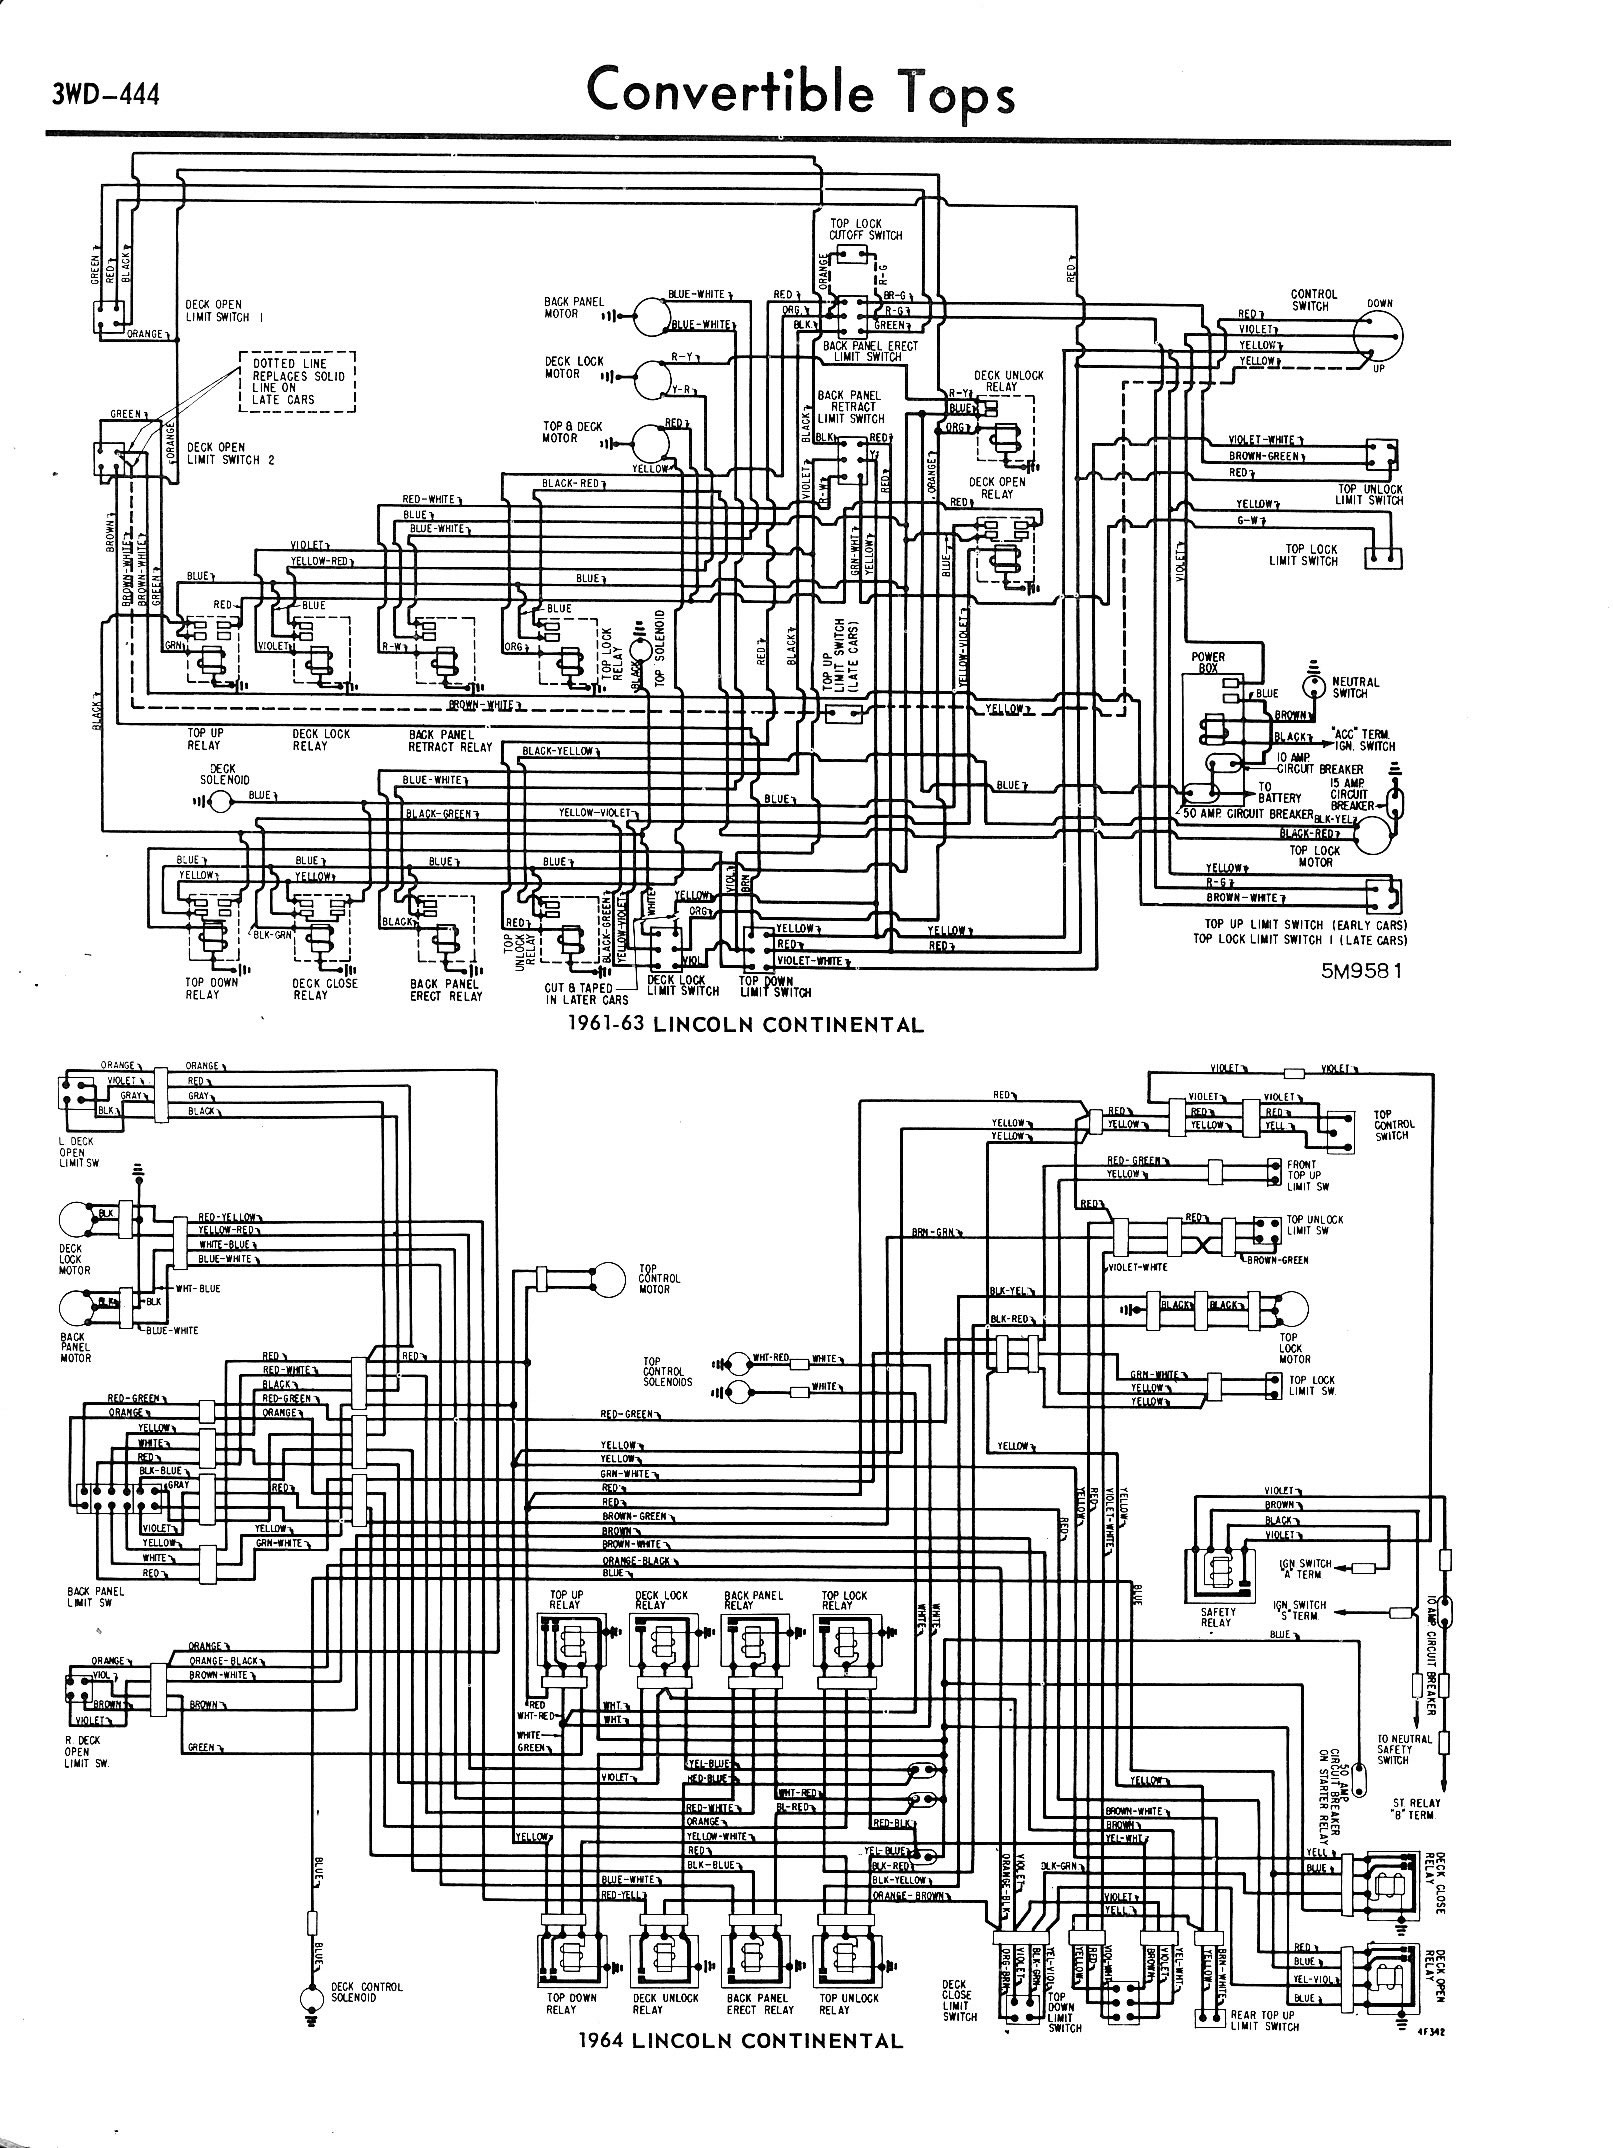 63 thunderbird voltage regulator wiring diagram simple wiring diagram rh  david huggett co uk